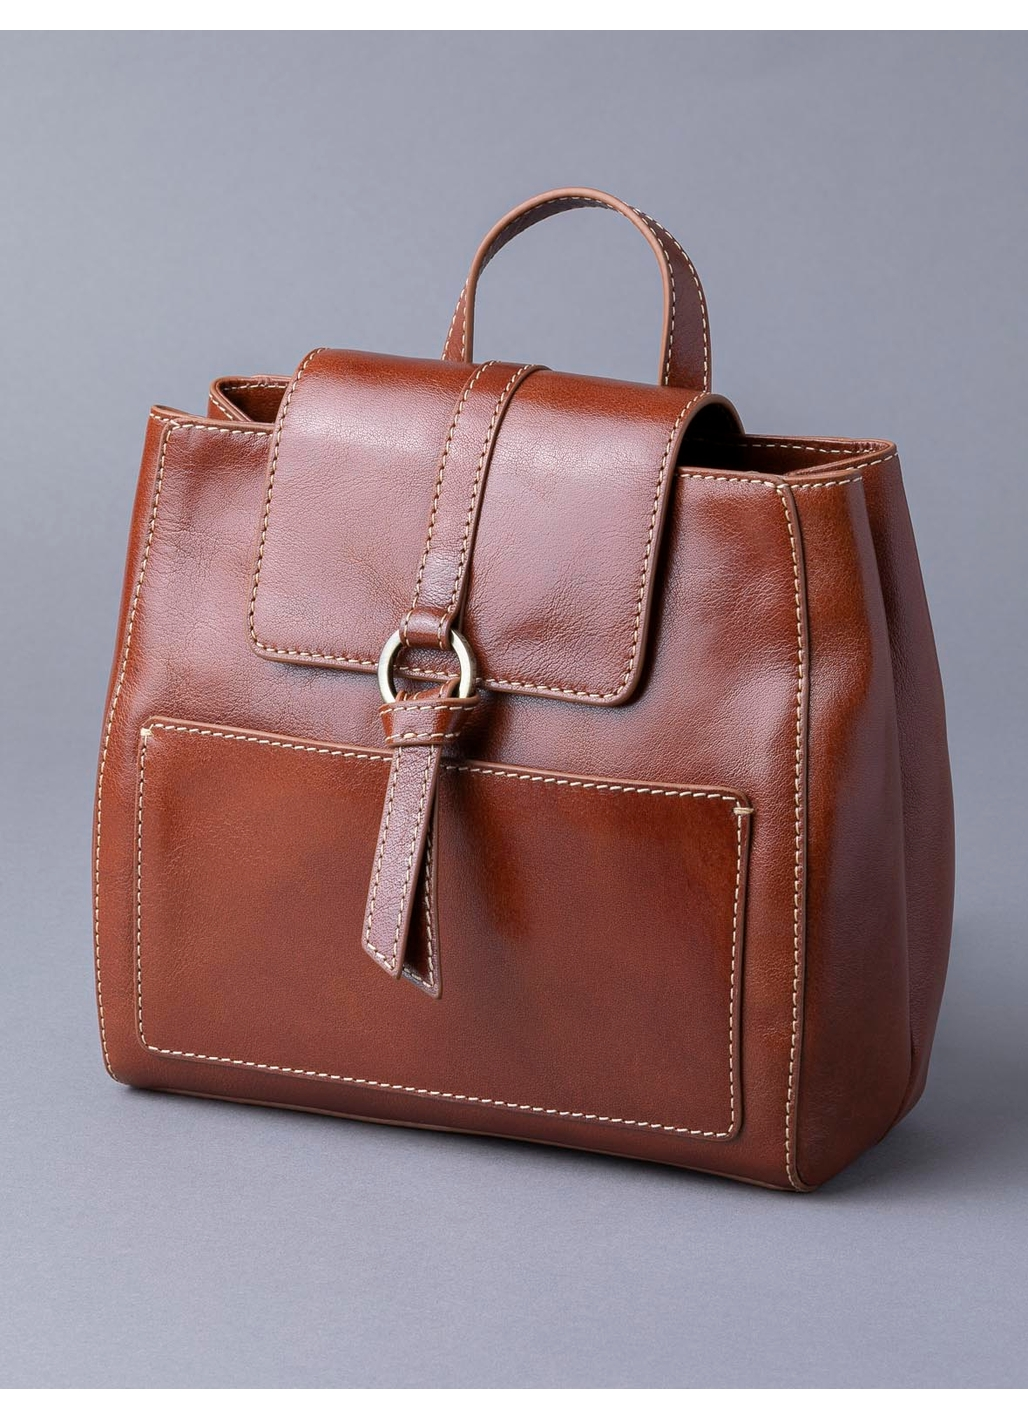 Birthwaite Leather Backpack in Cognac